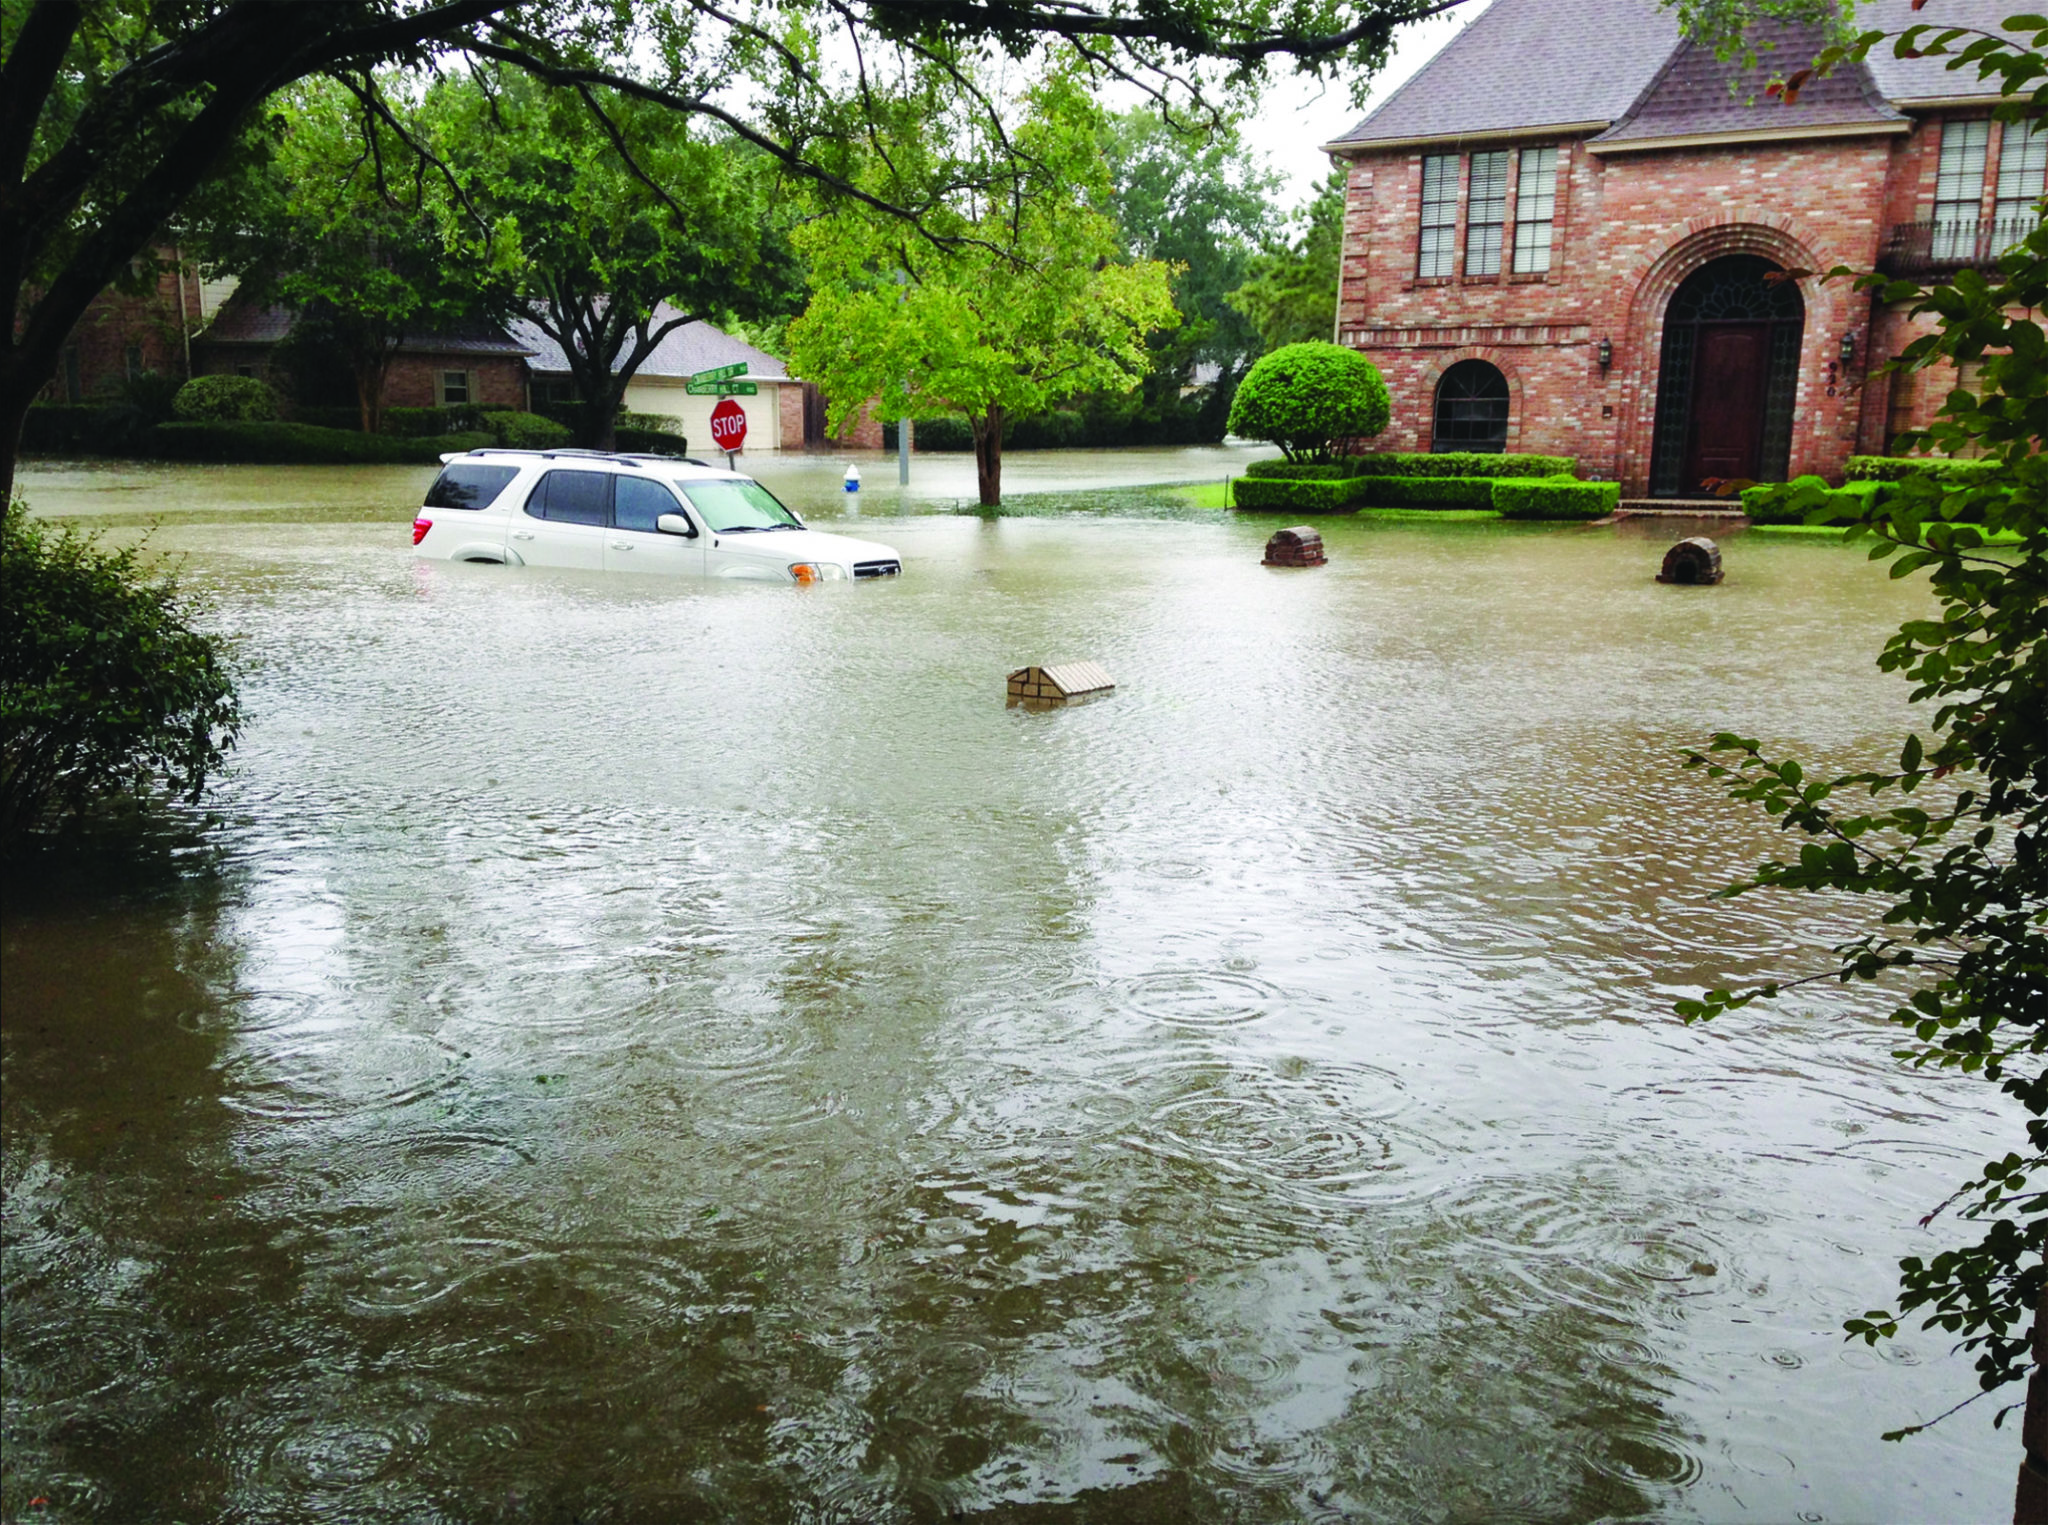 In Harvey's wake: L'pool natives digging out after Houston hurricane